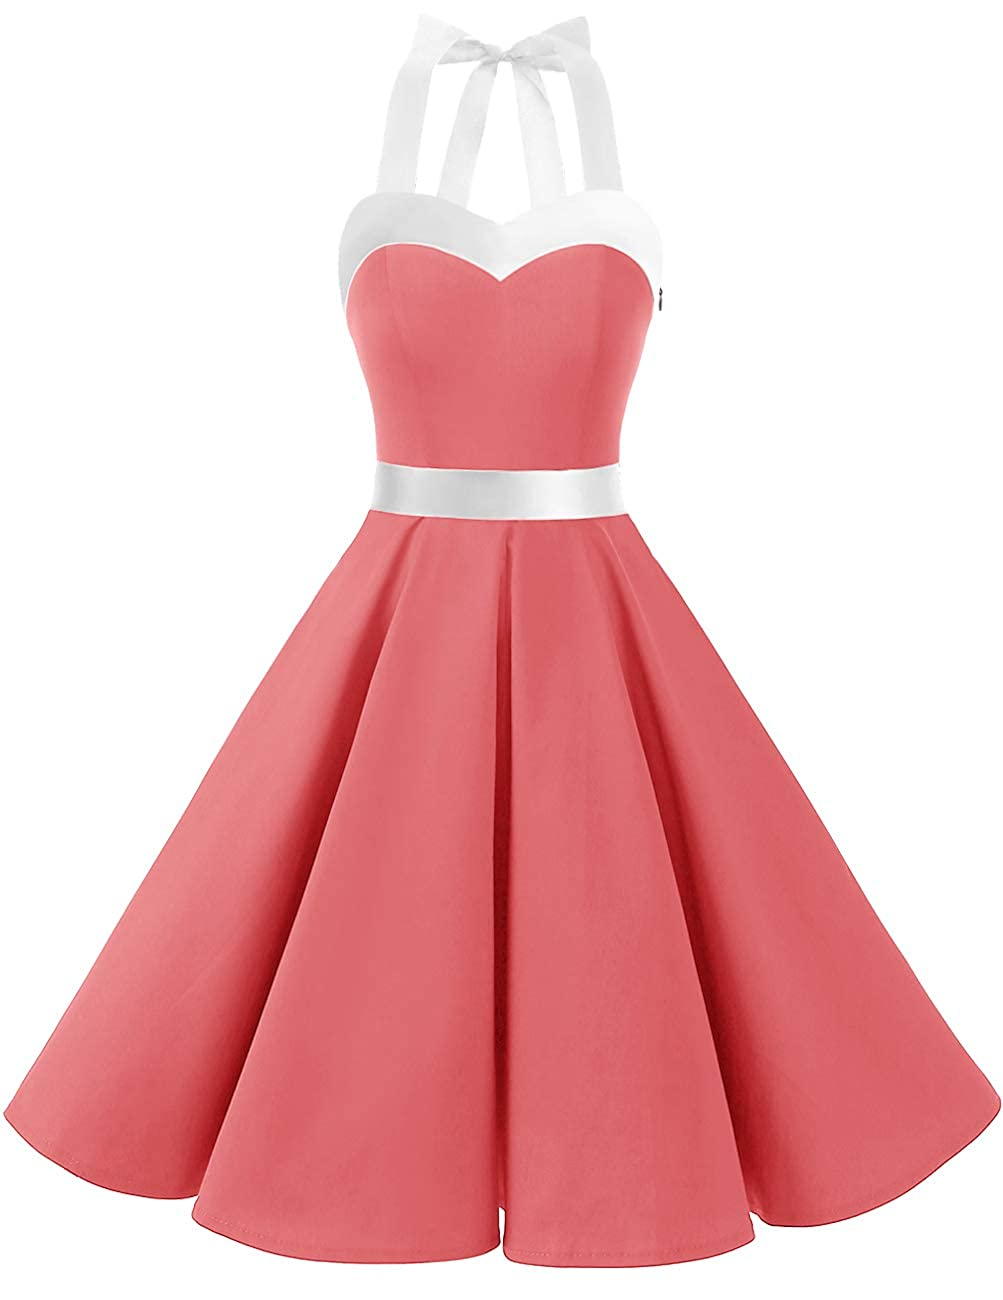 TALLA XL. Dresstells® Halter 50s Rockabilly Polka Dots Audrey Dress Retro Cocktail Dress Coral White XL